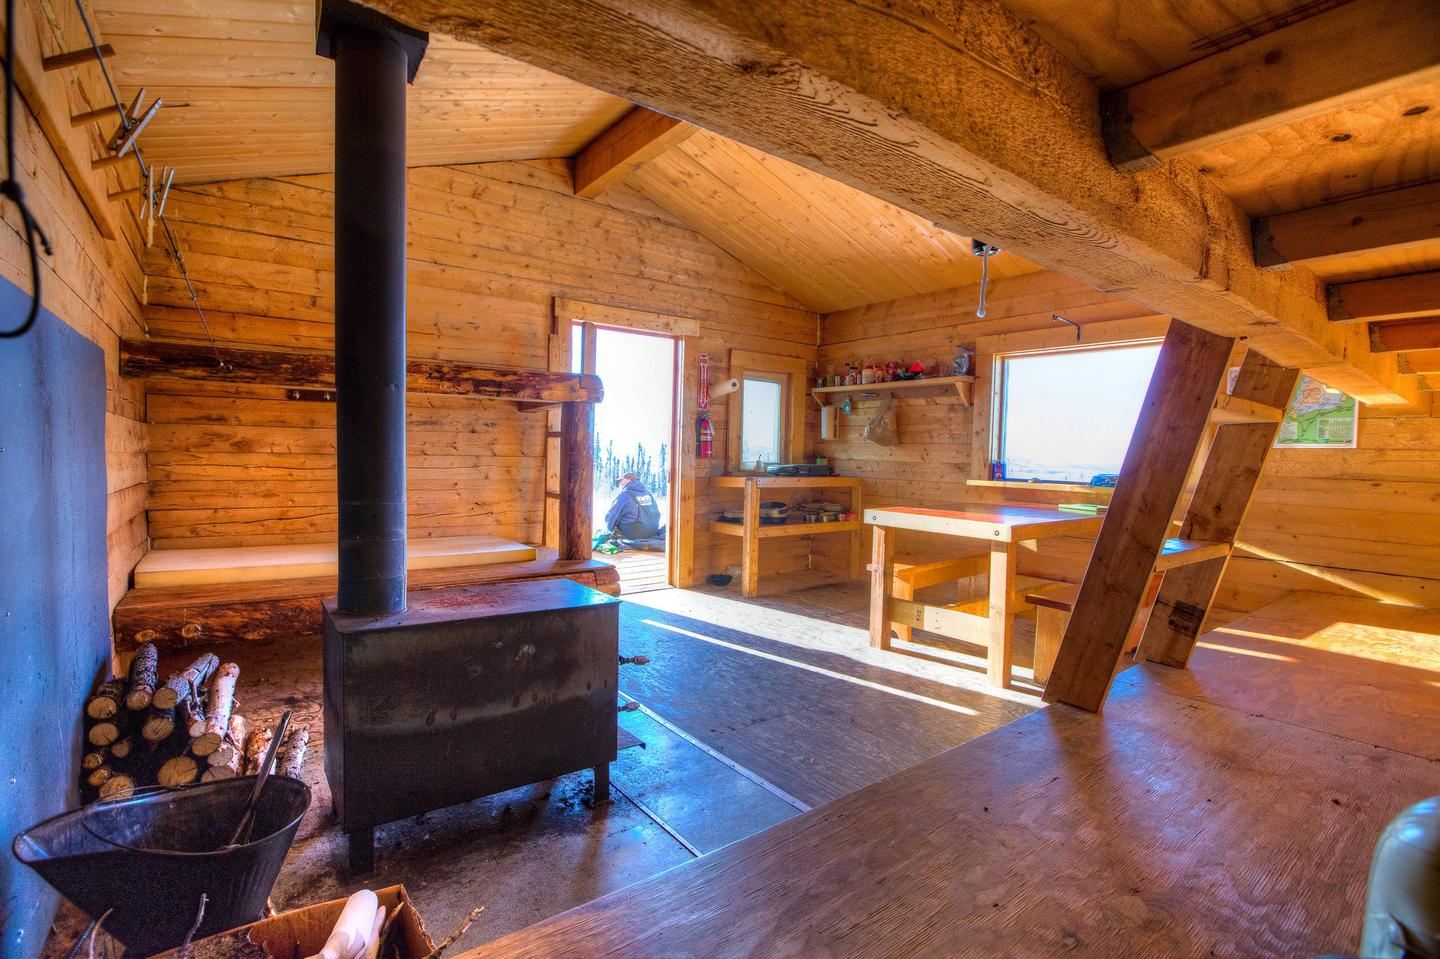 Inside of a log cabin with bunks and woodstoveInterior of Crowberry Cabin